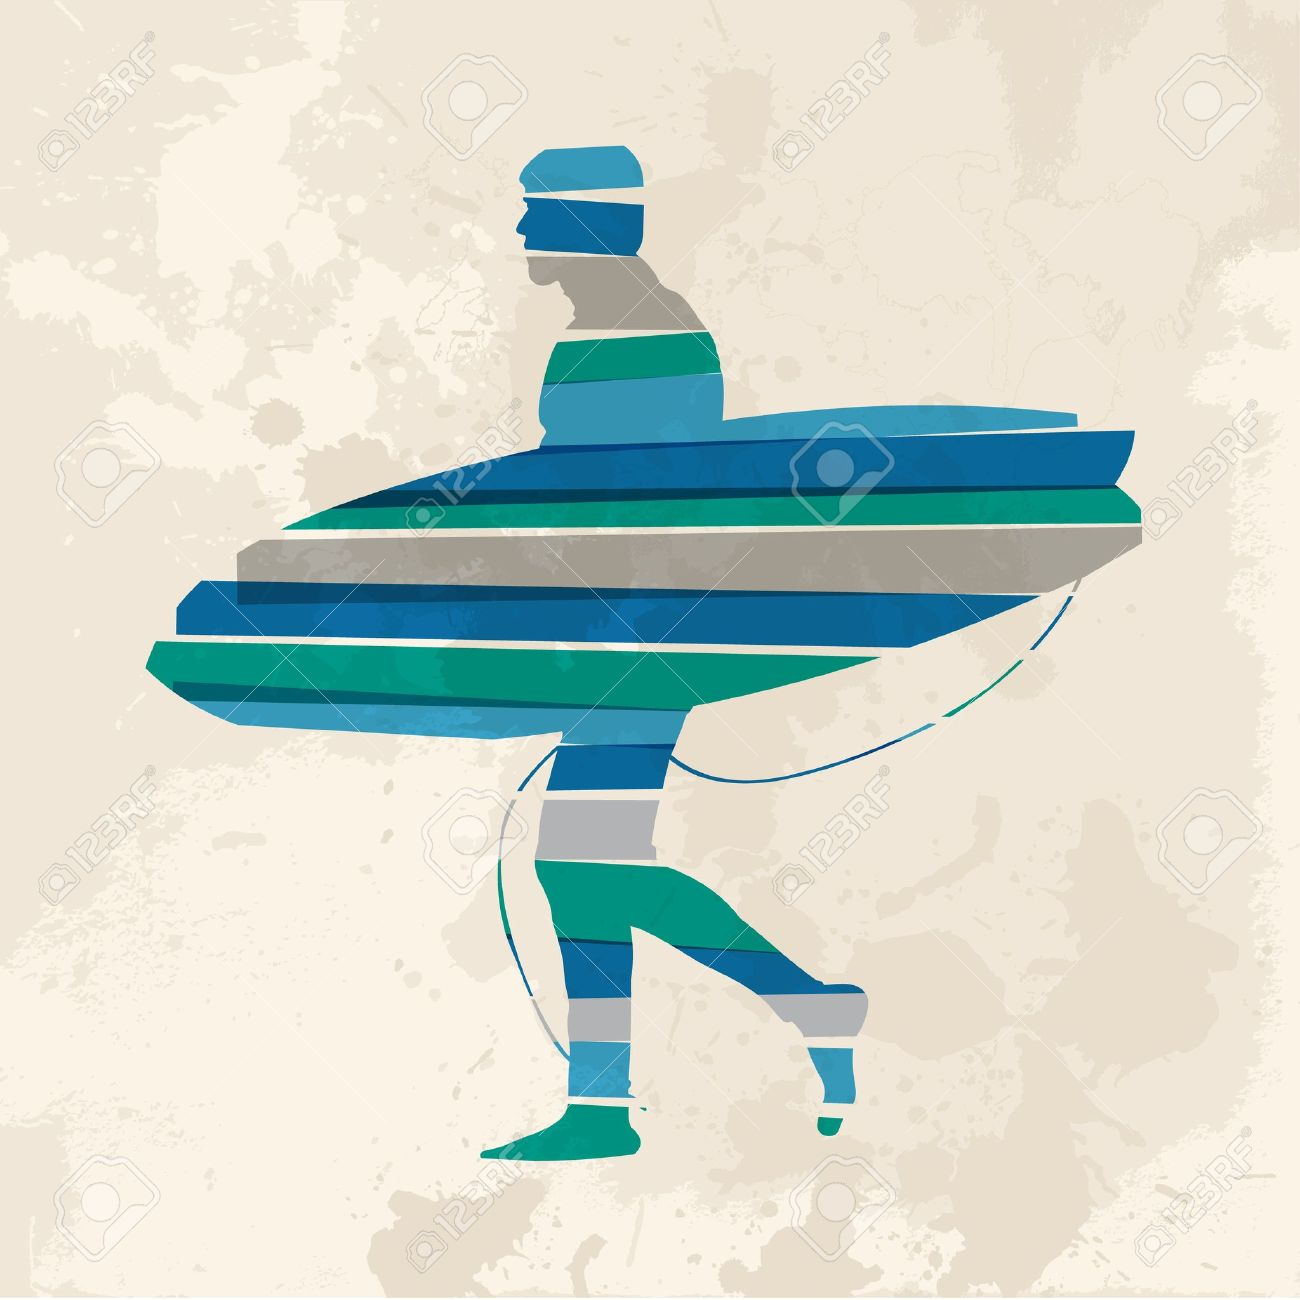 Surfboard with transparent background clipart clip freeuse Free clipart surf board transparent background - ClipartFest clip freeuse